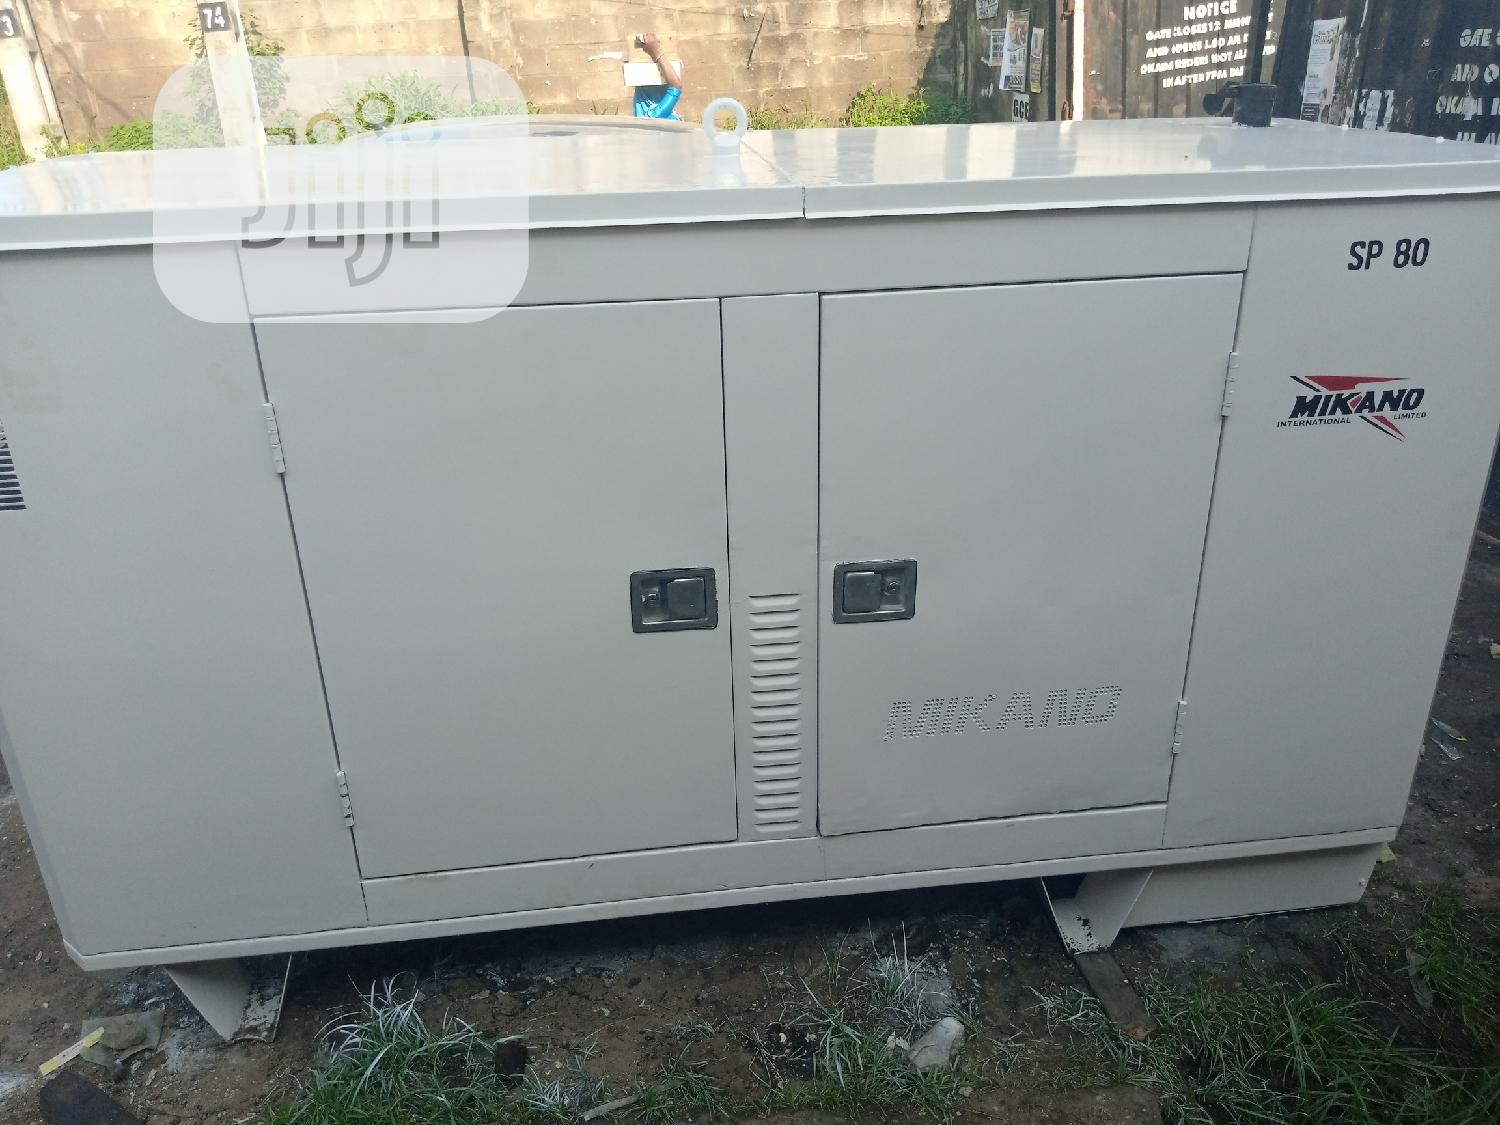 80 Kva Mikano Generator Perkins Silent Soundproof | Electrical Equipment for sale in Ikeja, Lagos State, Nigeria